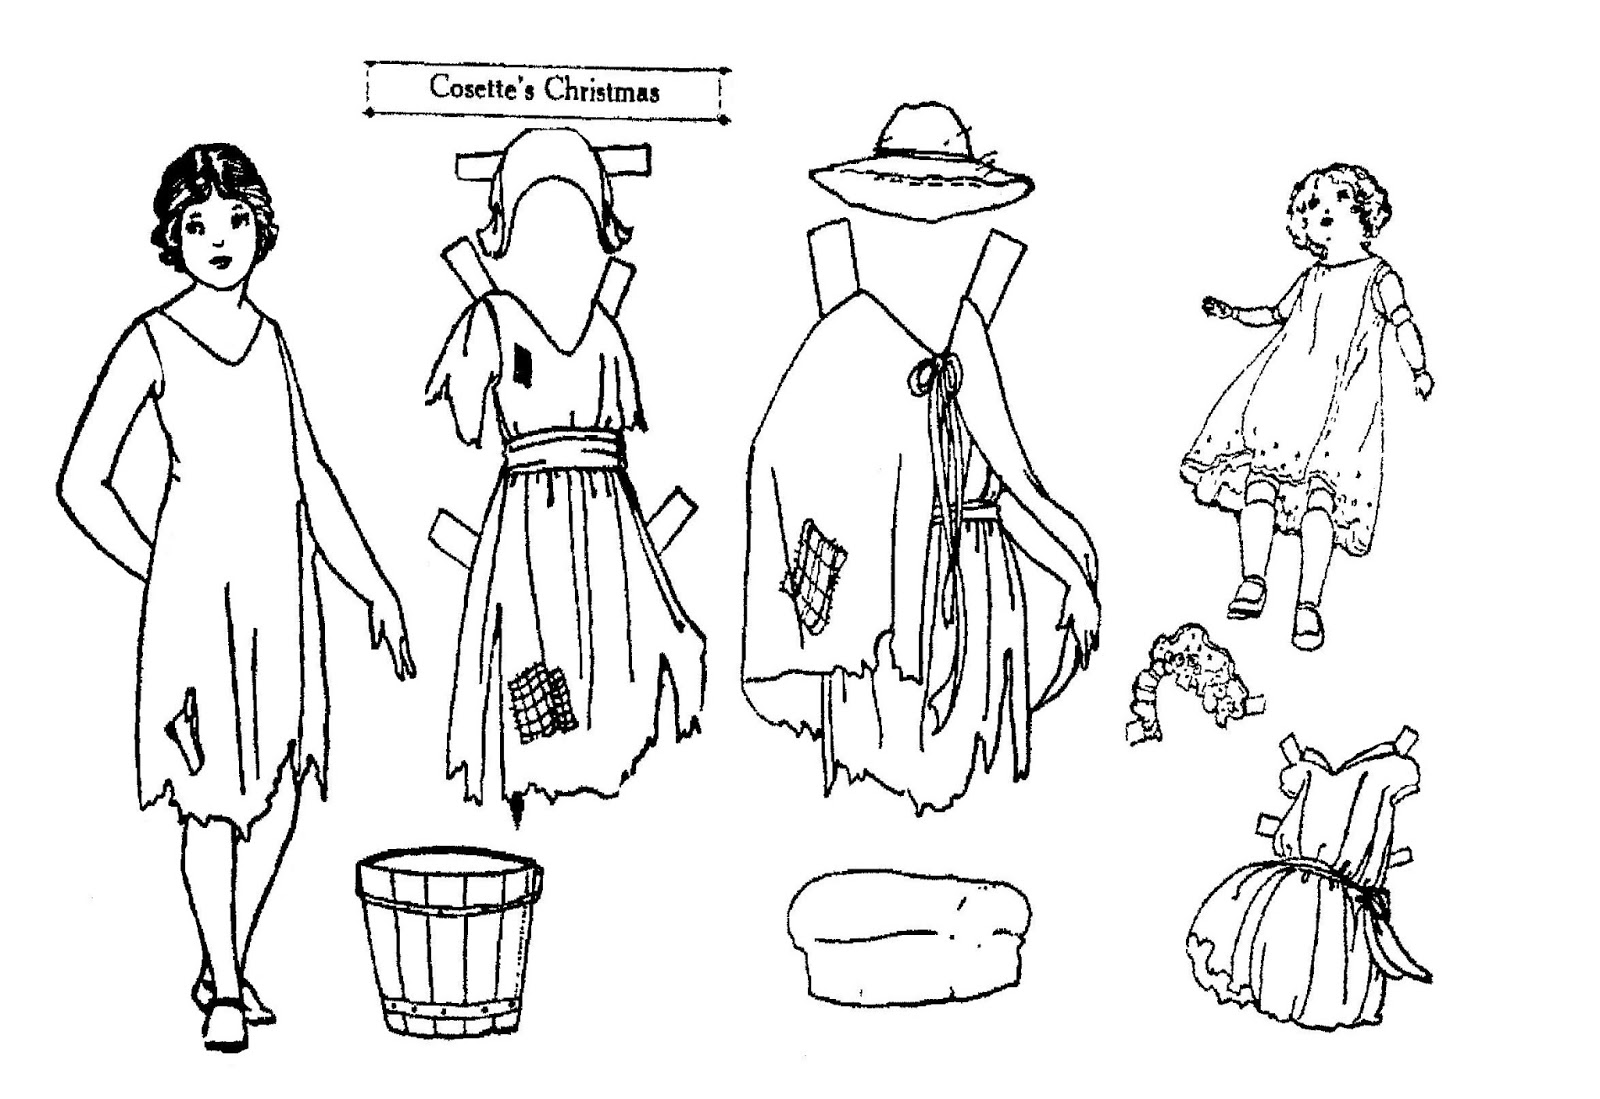 Mostly Paper Dolls Too!: COSETTE'S CHRISTMAS Paper Dolls